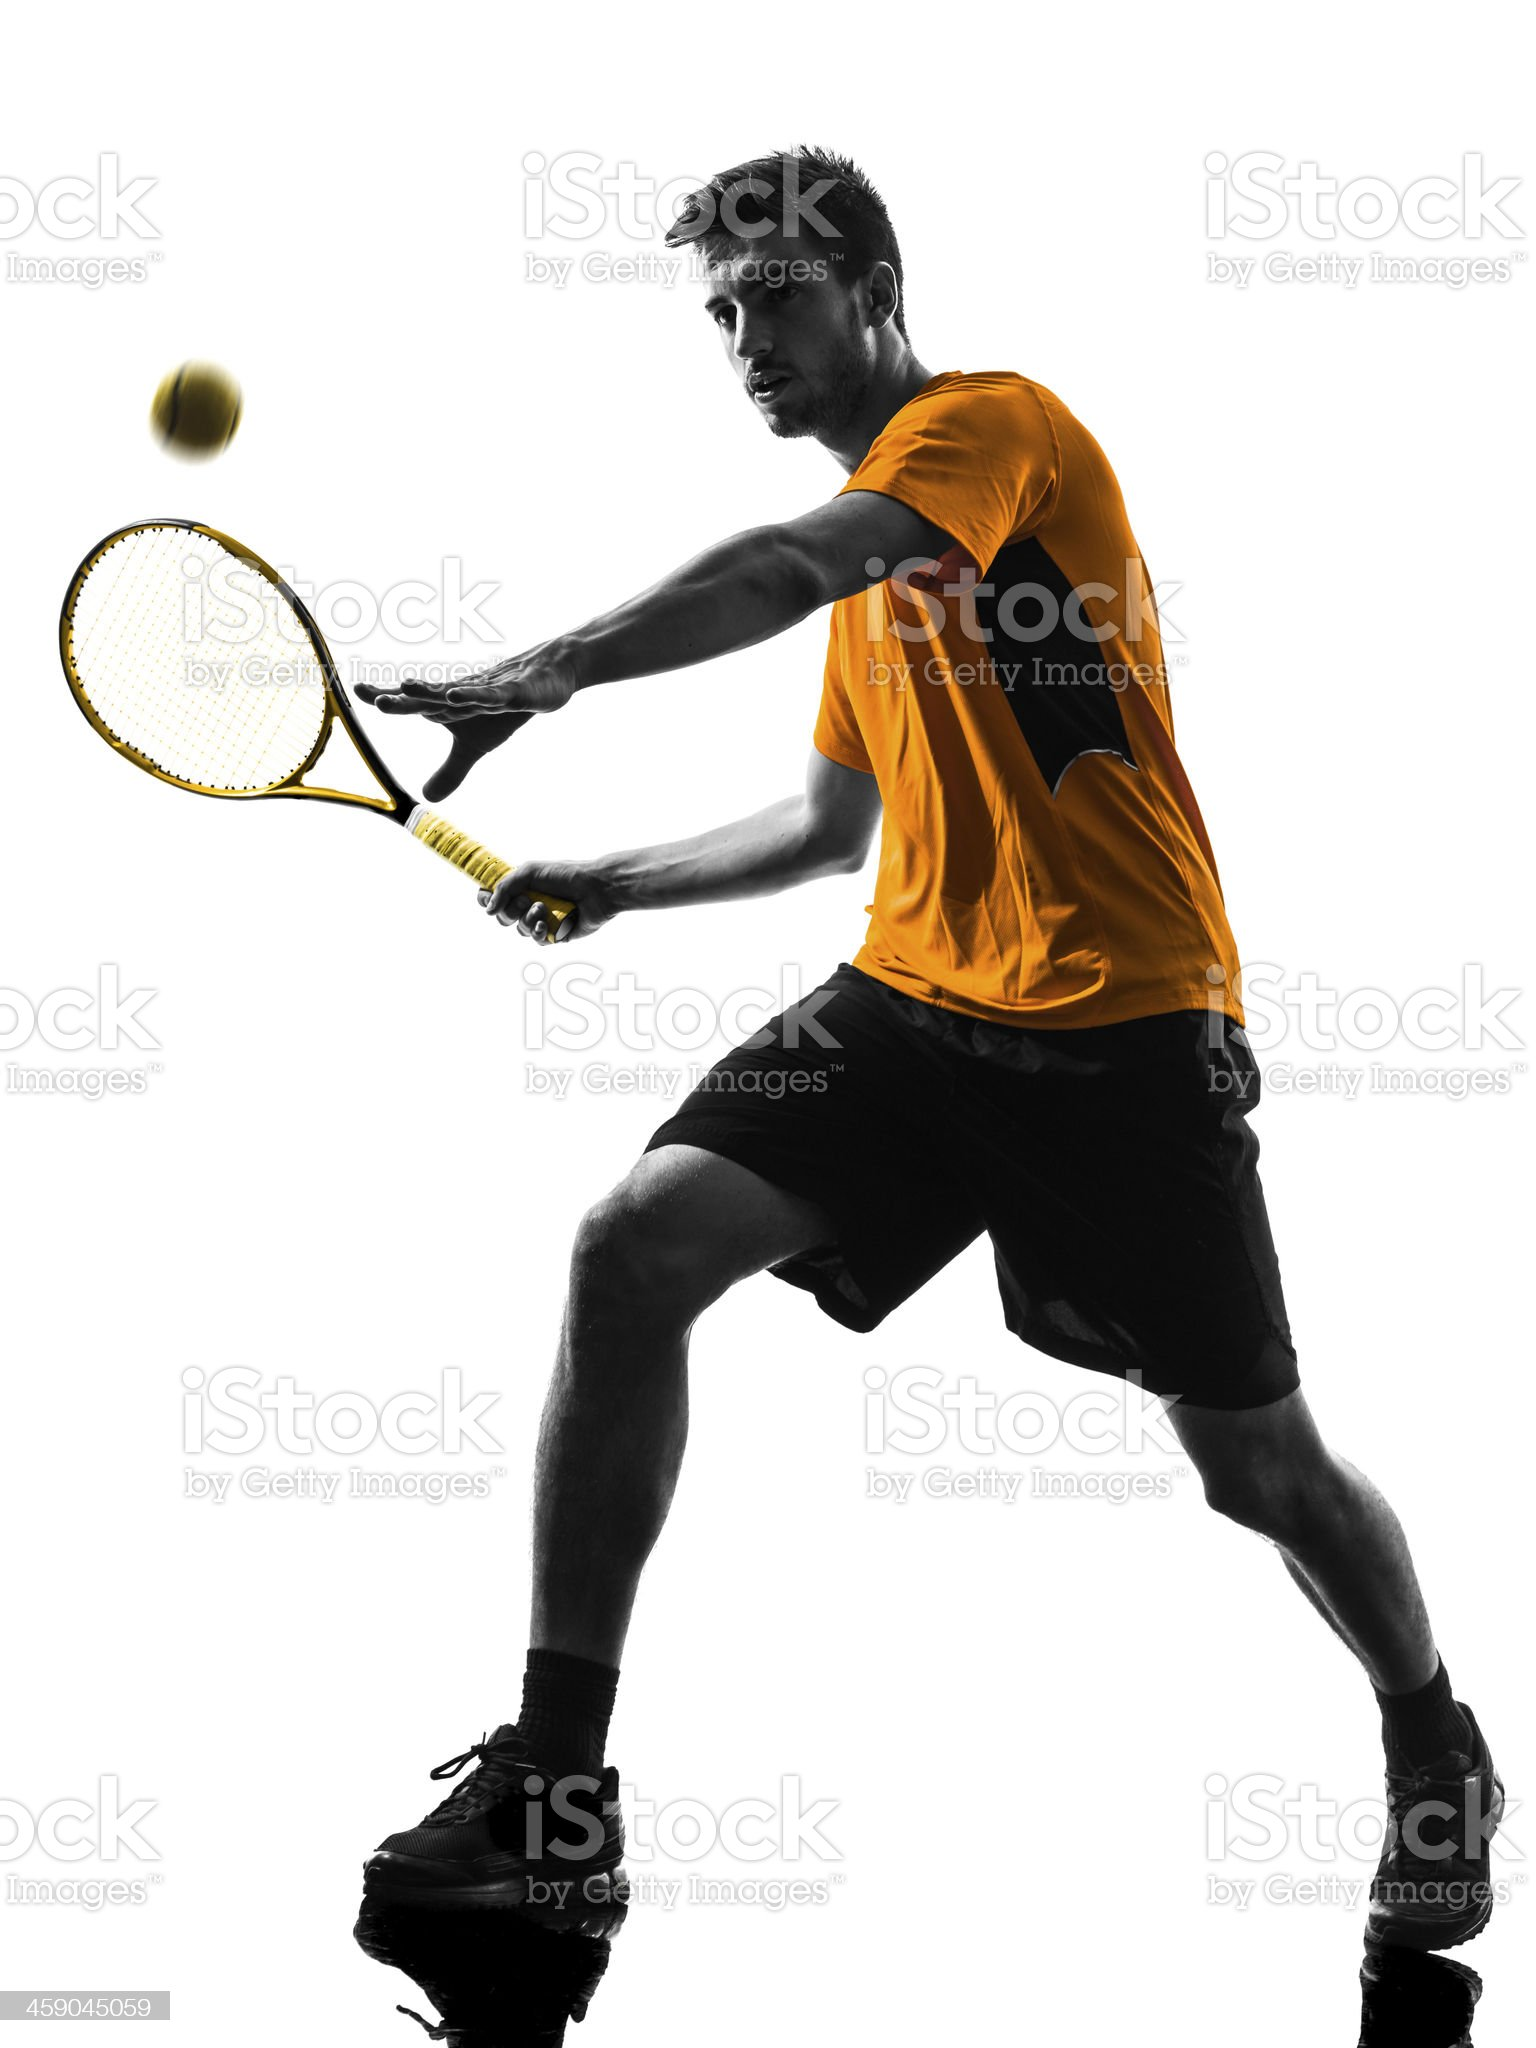 White background with silhouette of male tennis player royalty-free stock photo